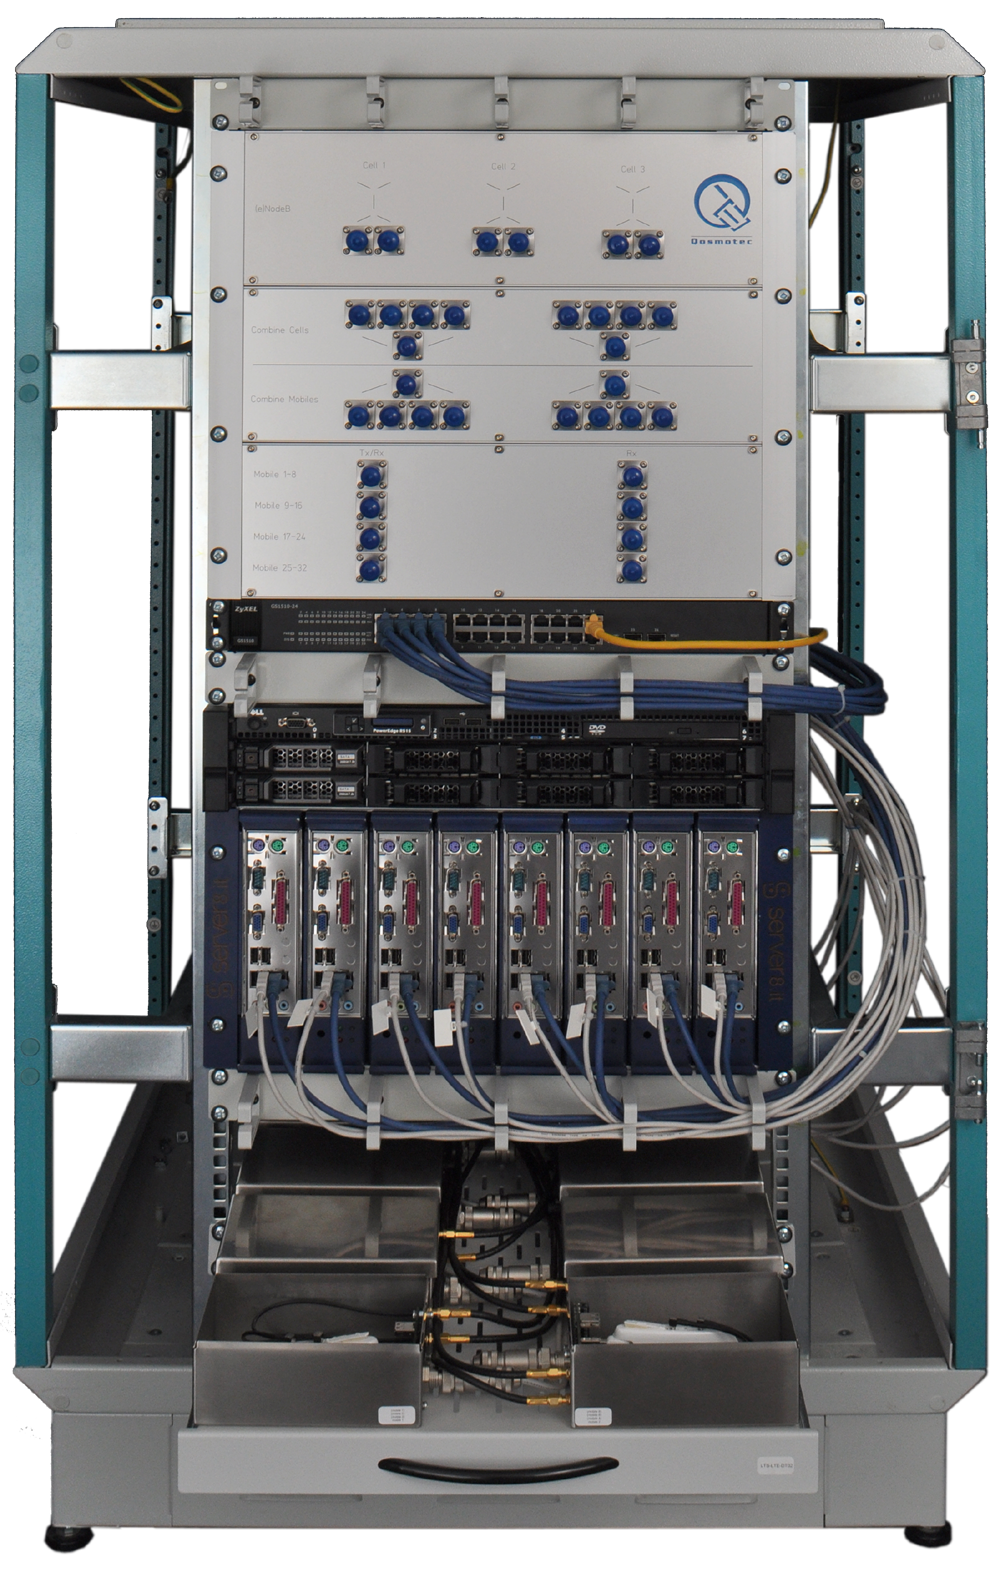 10 Years Experience In Mobile Network Testing Quick On Board Junction Tester Qosmotecs Lts Test Automation System As A Rack Setup To Control Large Numbers Of Ues